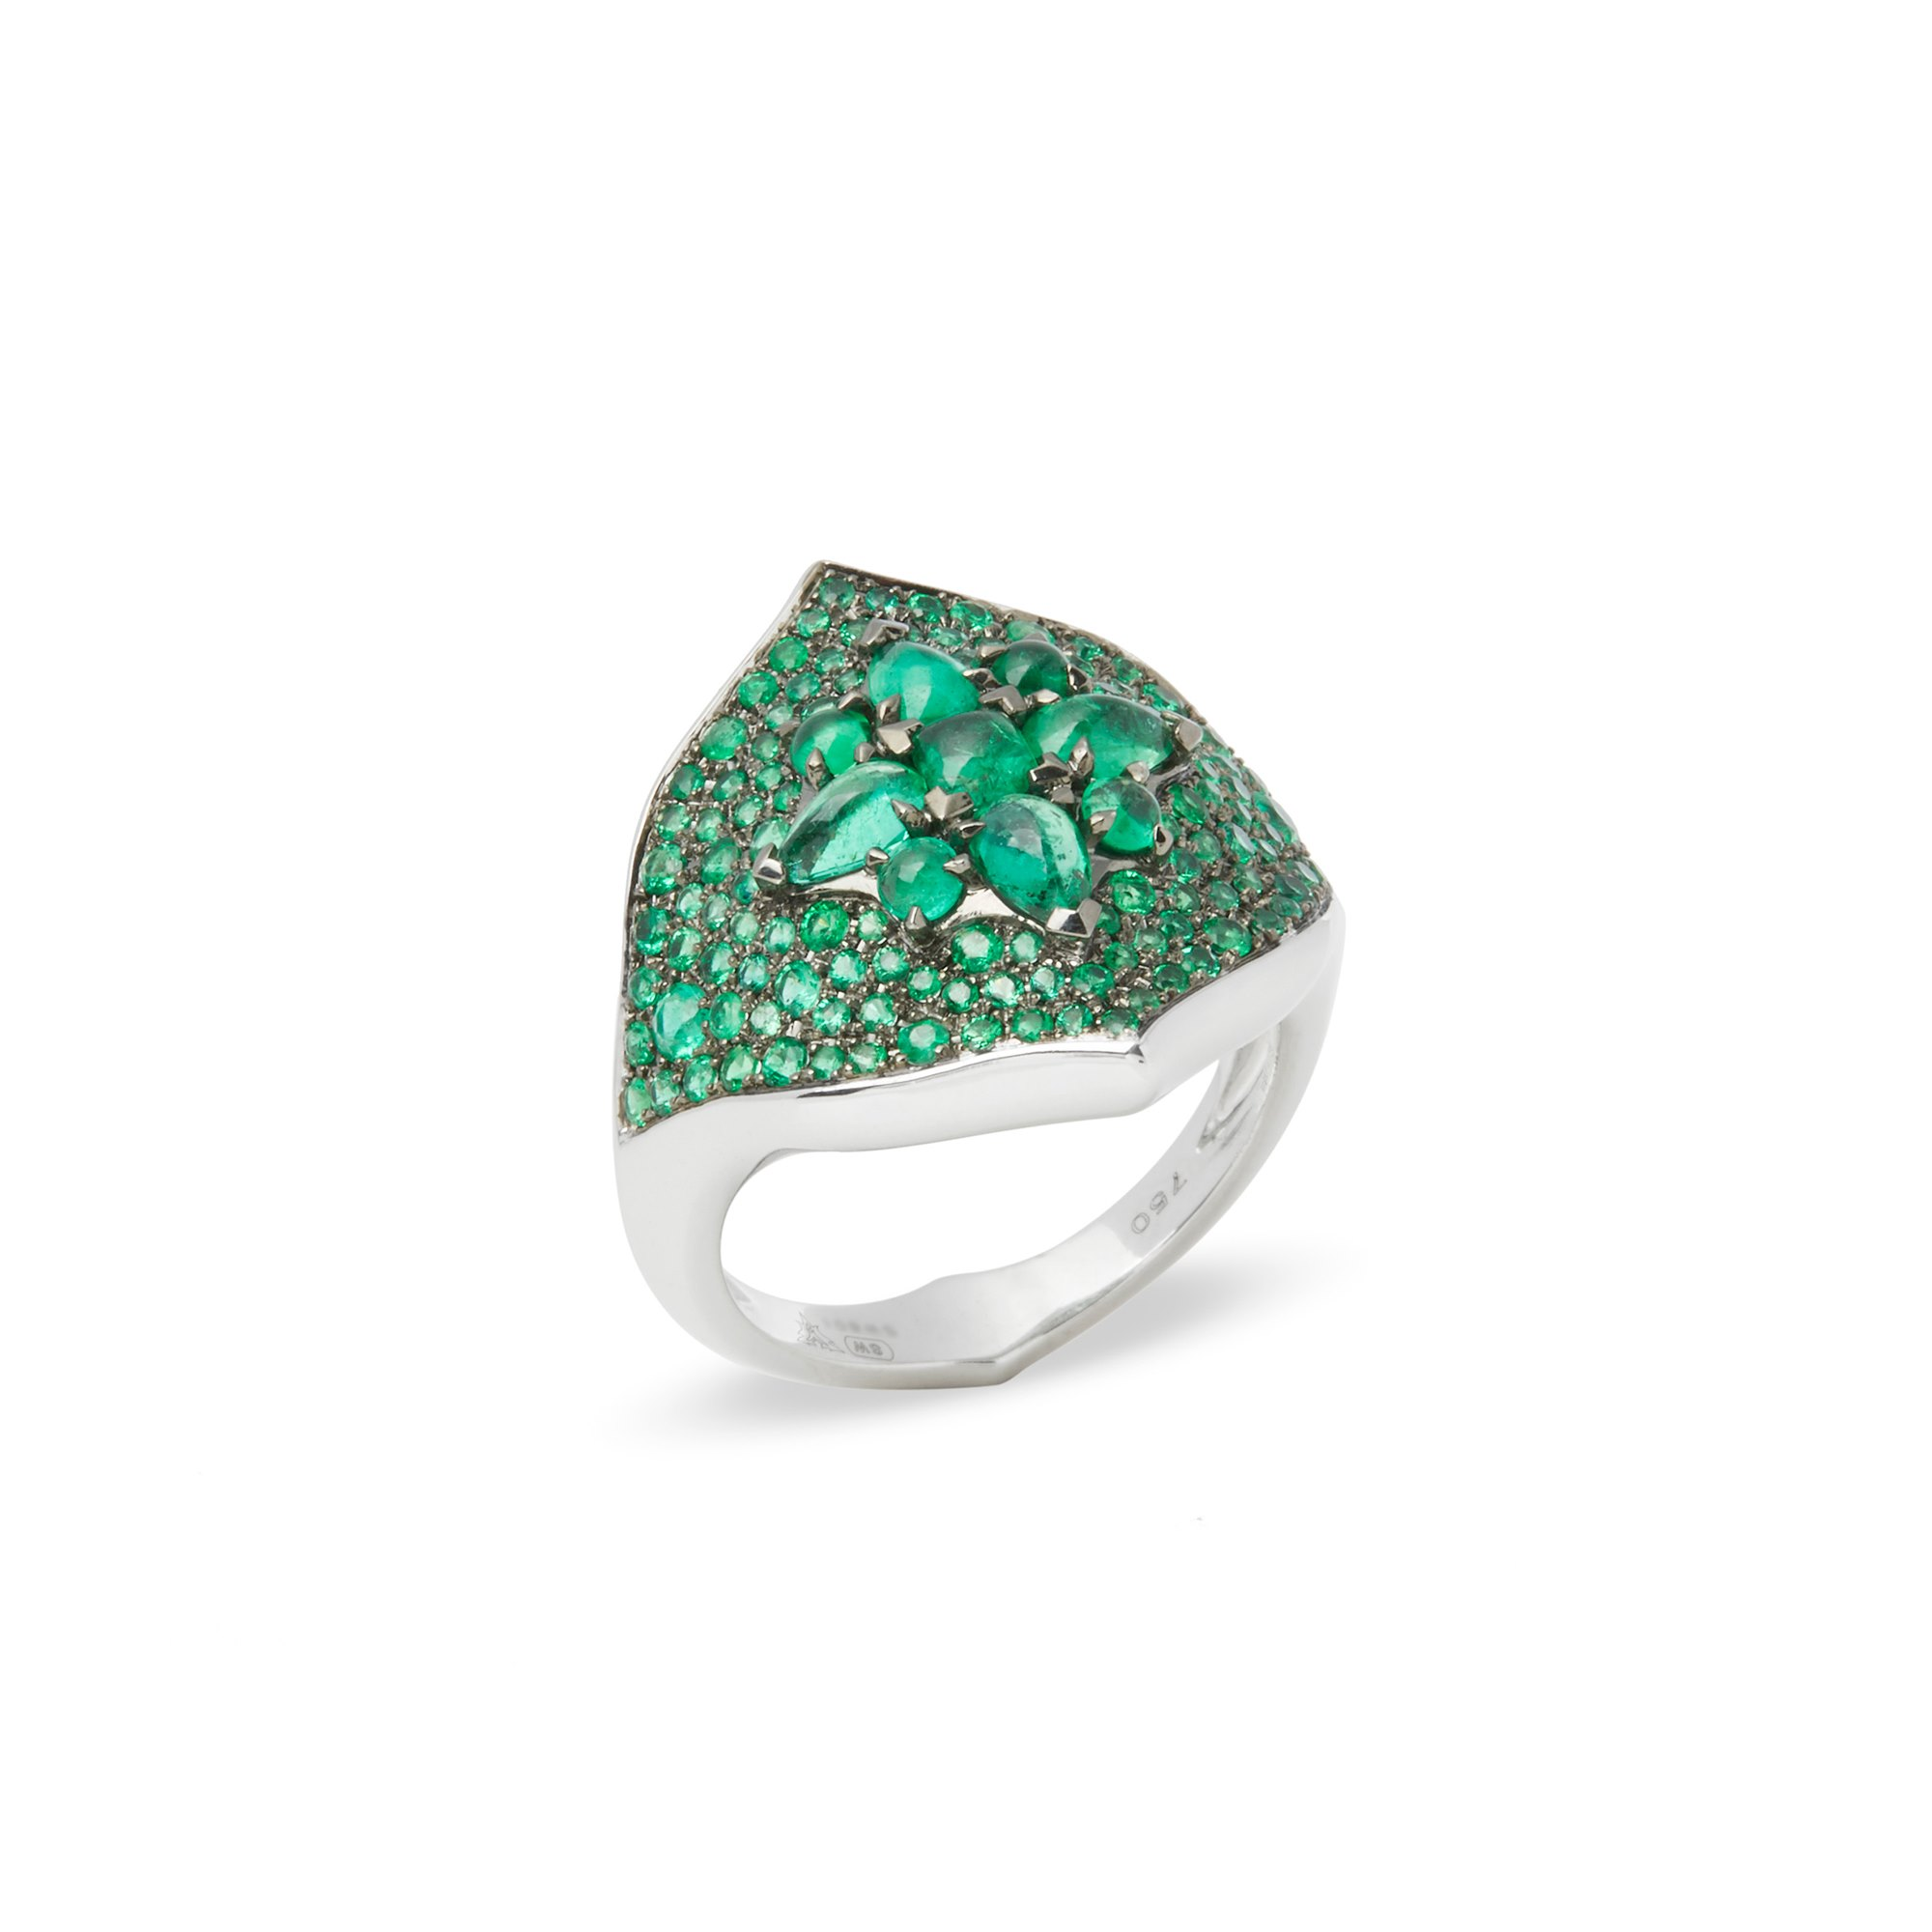 Stephen Webster Belle Epoque 18ct White Gold Emerald Ring